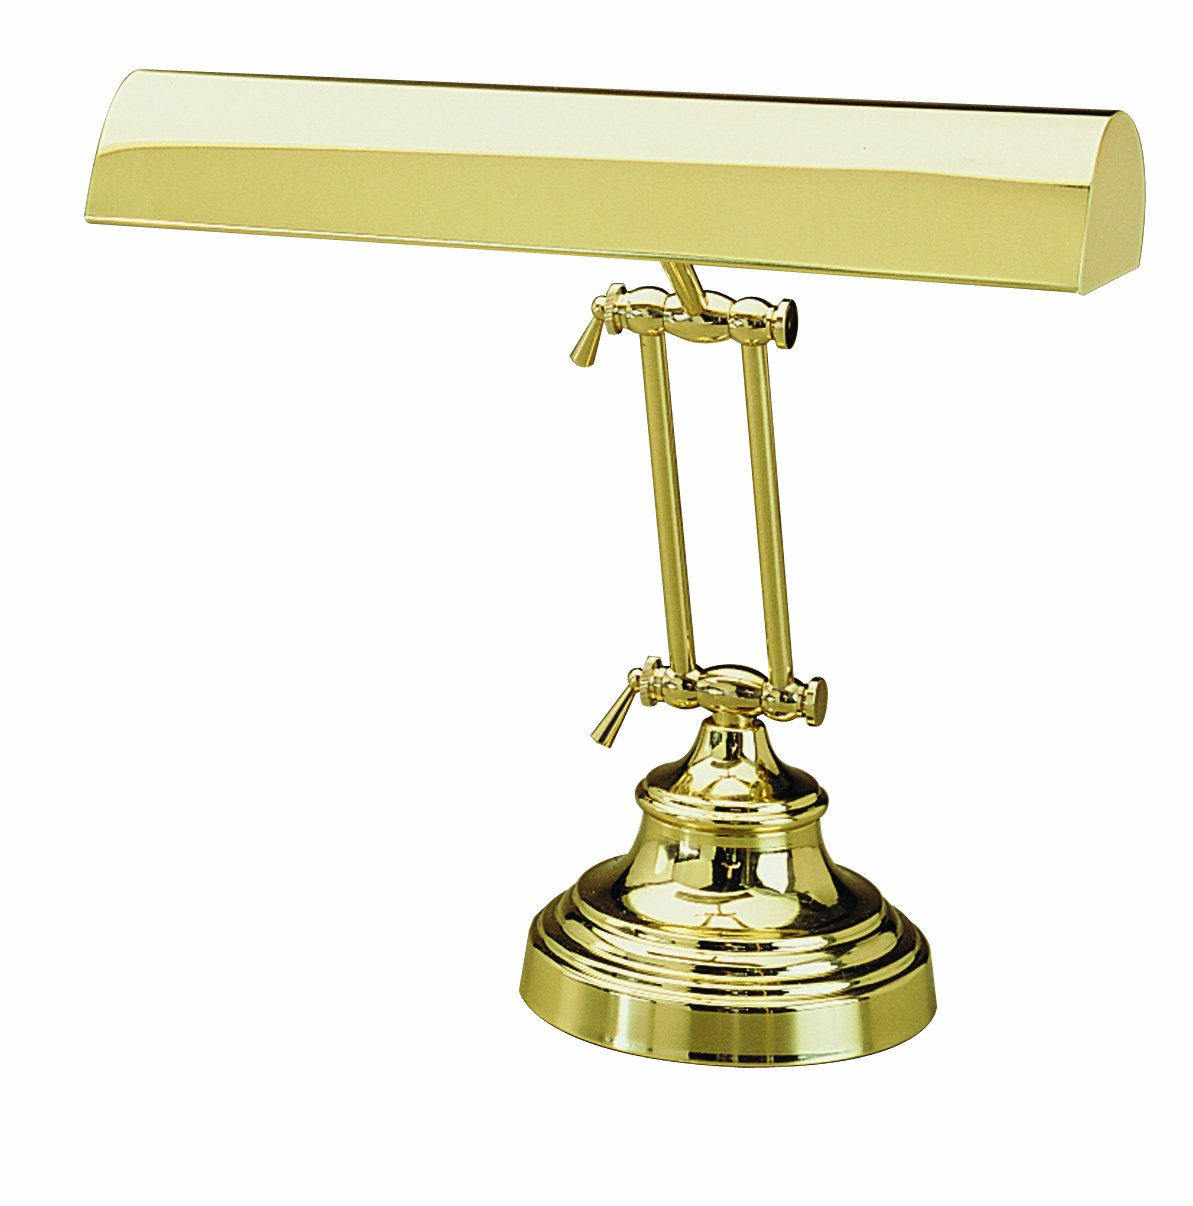 House of Troy P14-231-61 12-Inch Portable Desk/Piano Hinged Lamp, Polished Brass by House of Troy